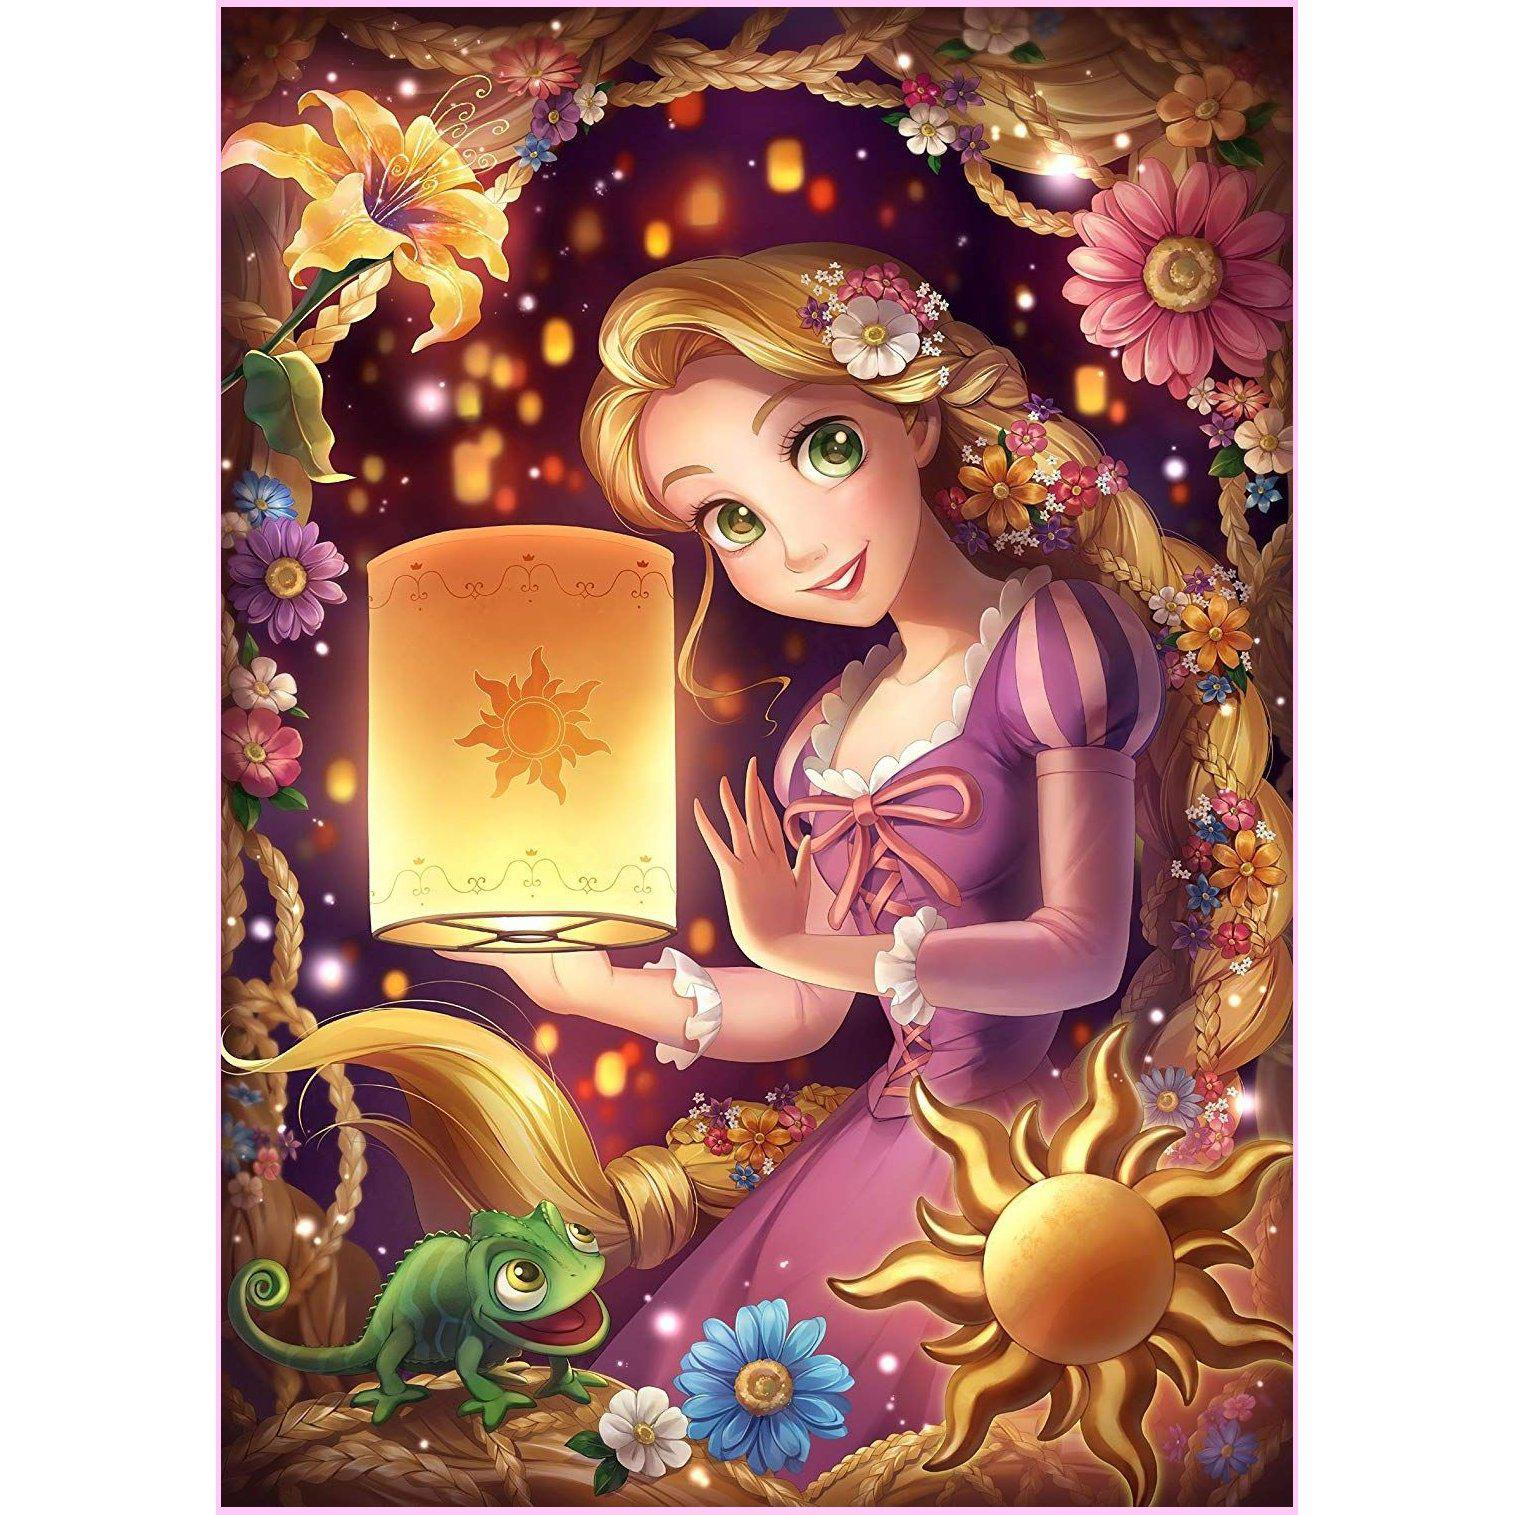 Let Down Your Hair-Diamond Painting Kit USPS-30x40cm (12x16 in)-Square-Heartful Diamonds